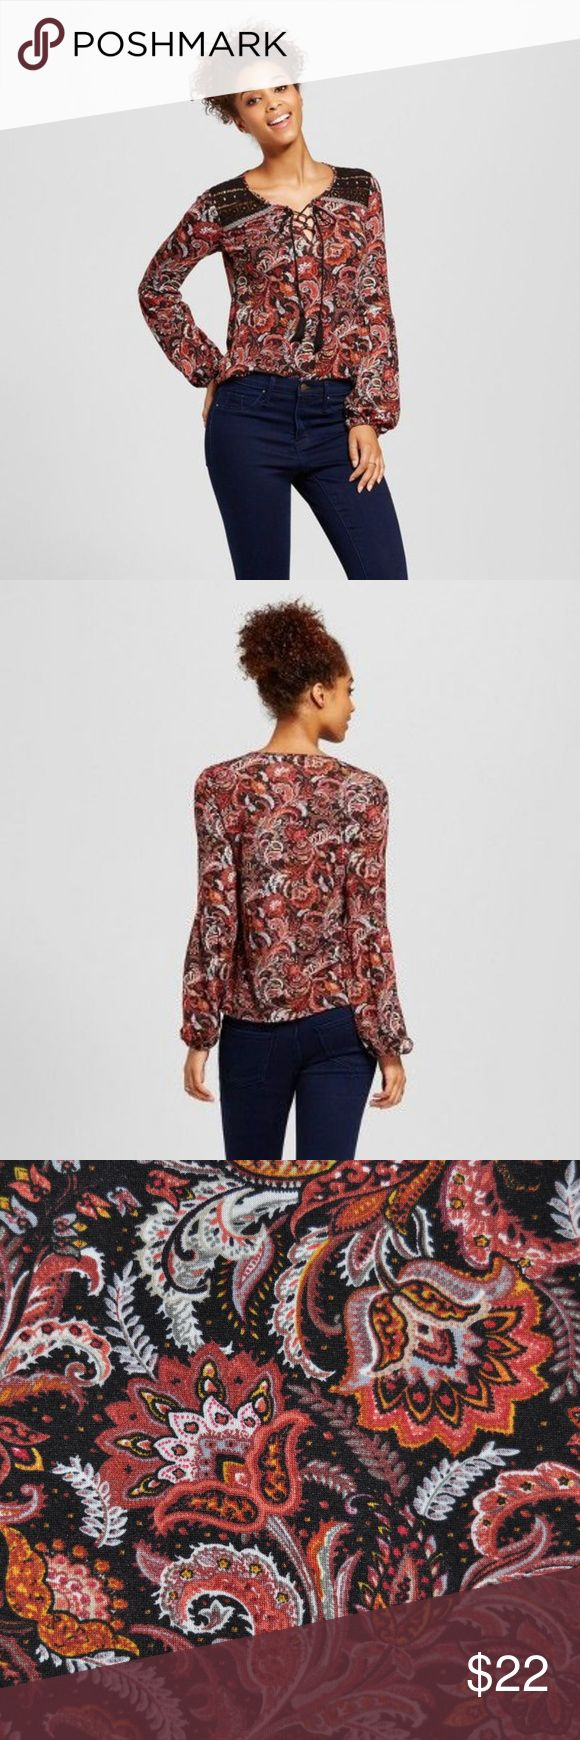 NEW Floral Printed Lace-Up Bishop Sleeve Top [D3] Whether you're looking for a date night look or a sweet top to wear to class, the Printed Bishop-Sleeve Top will instantly add a spark to your look. With the bold pattern, crochet panels on the yoke, lace-up neckline and bishop sleeves, this printed blouse is enough to dress up even the simplest skinny jeans.   size XS new without tags color: red multi  @cjrose25  tags: folk. bohemian. boho. hippie. gypsy. festival. Xhilaration Tops Blouses